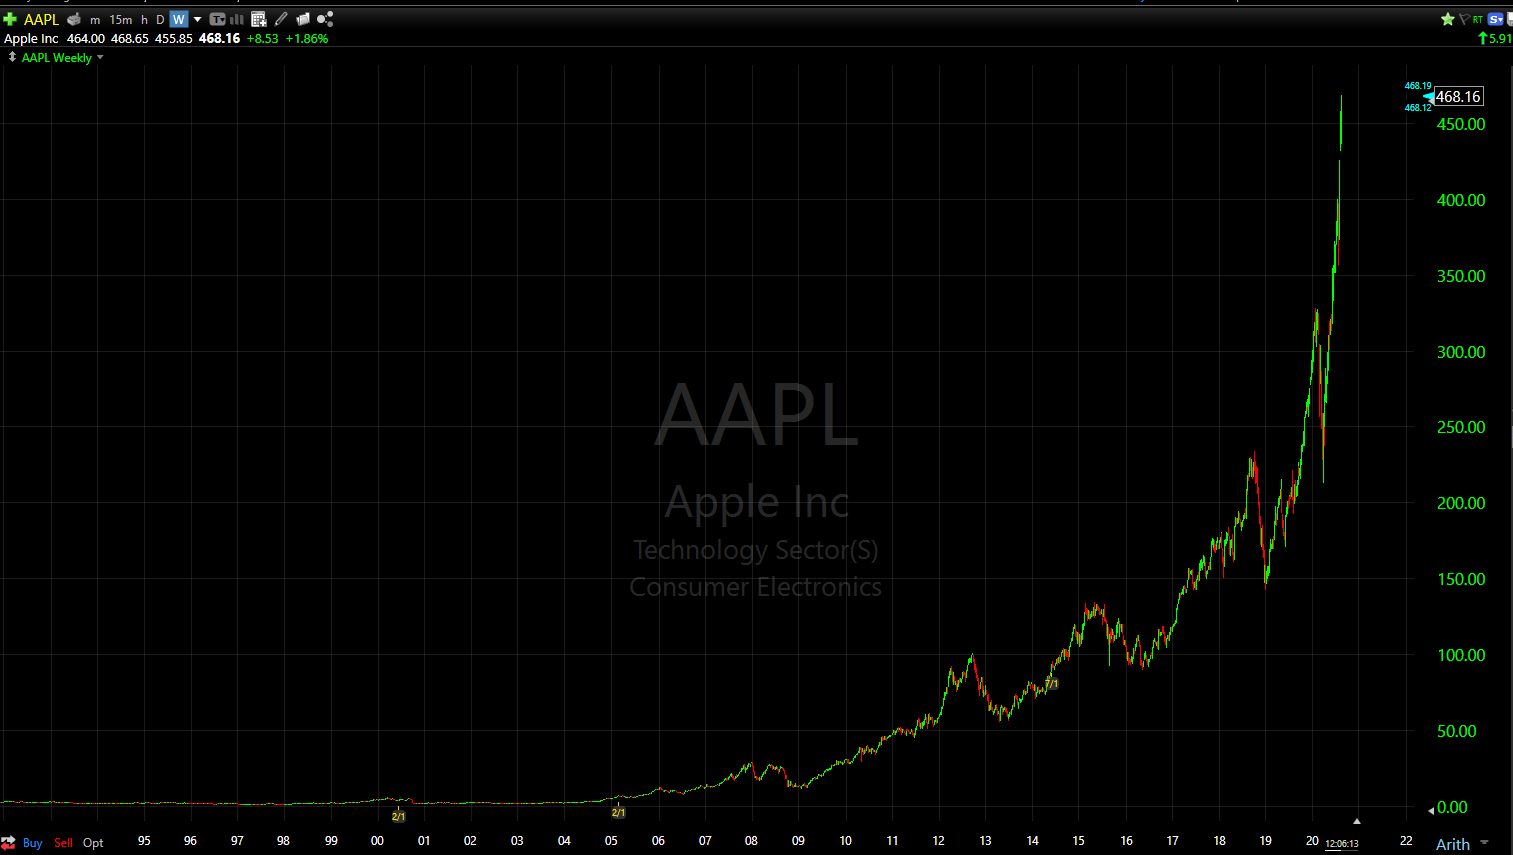 Apple's stock has more than doubled off the pandemic lows in March 2020.